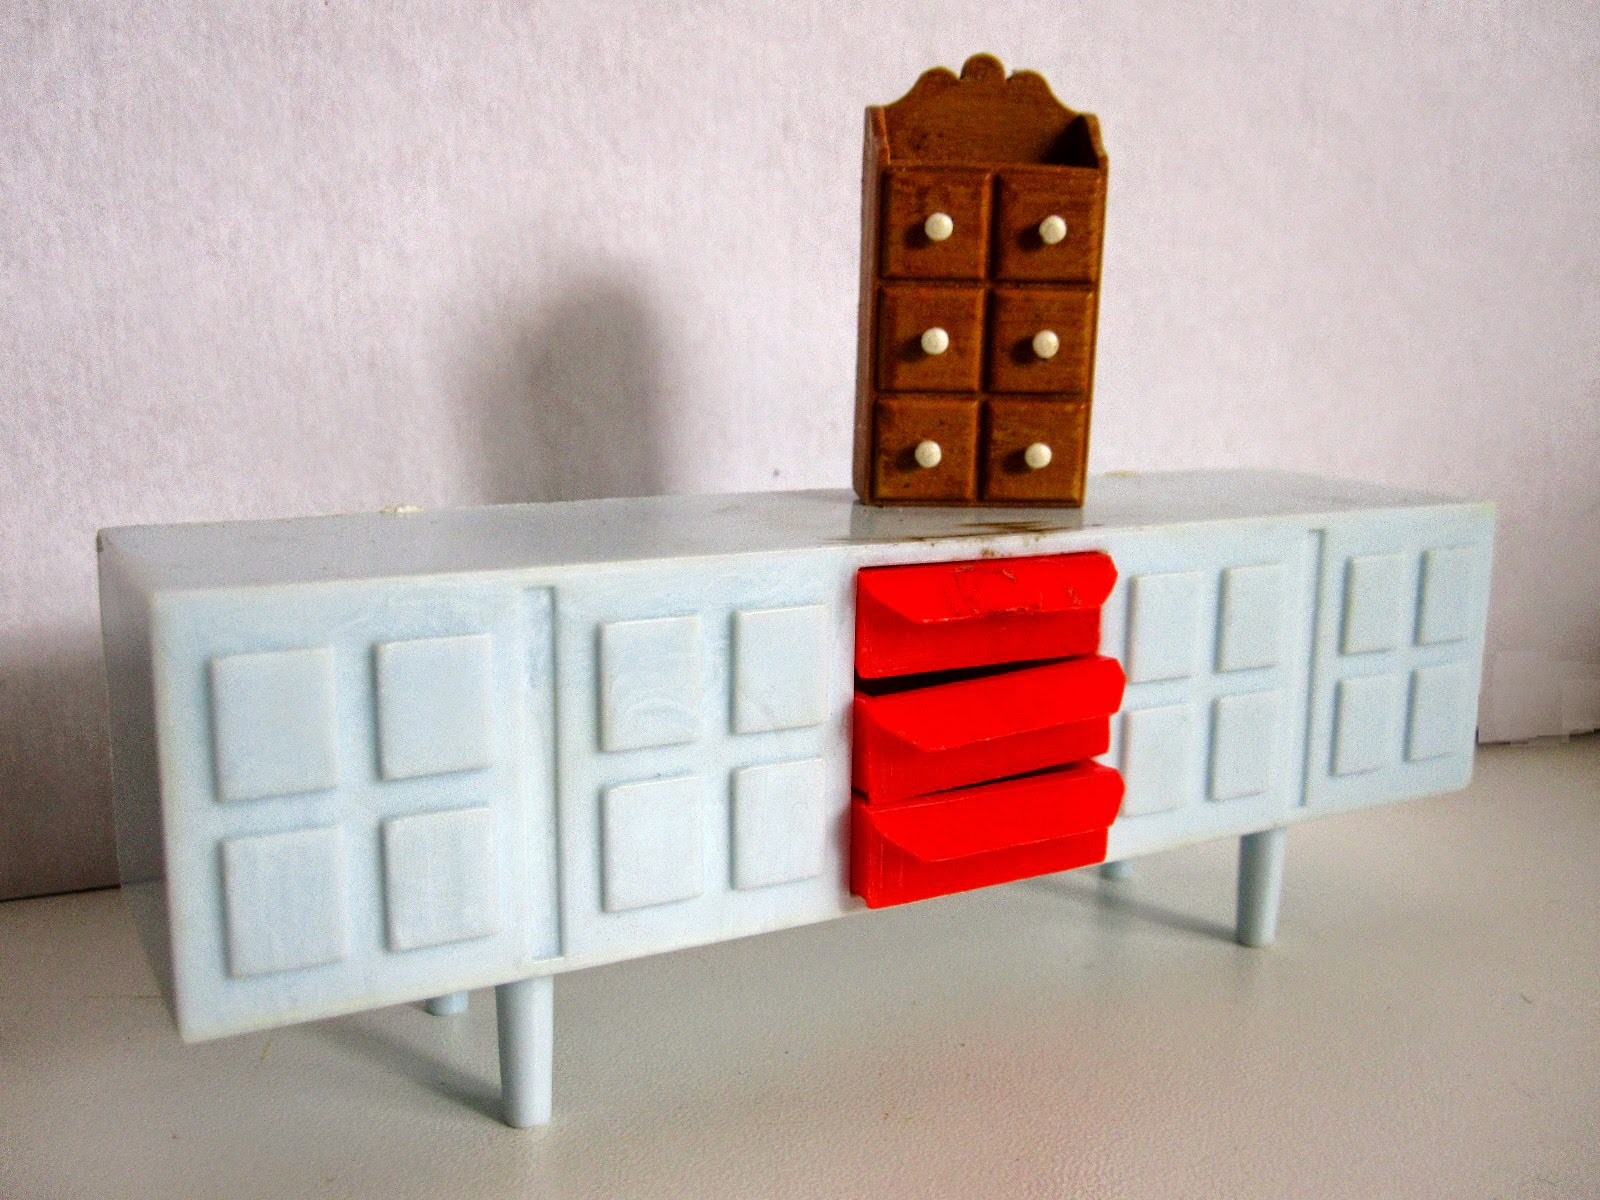 Modern dolls' house miniature plastic sideboard and spice cabinet.